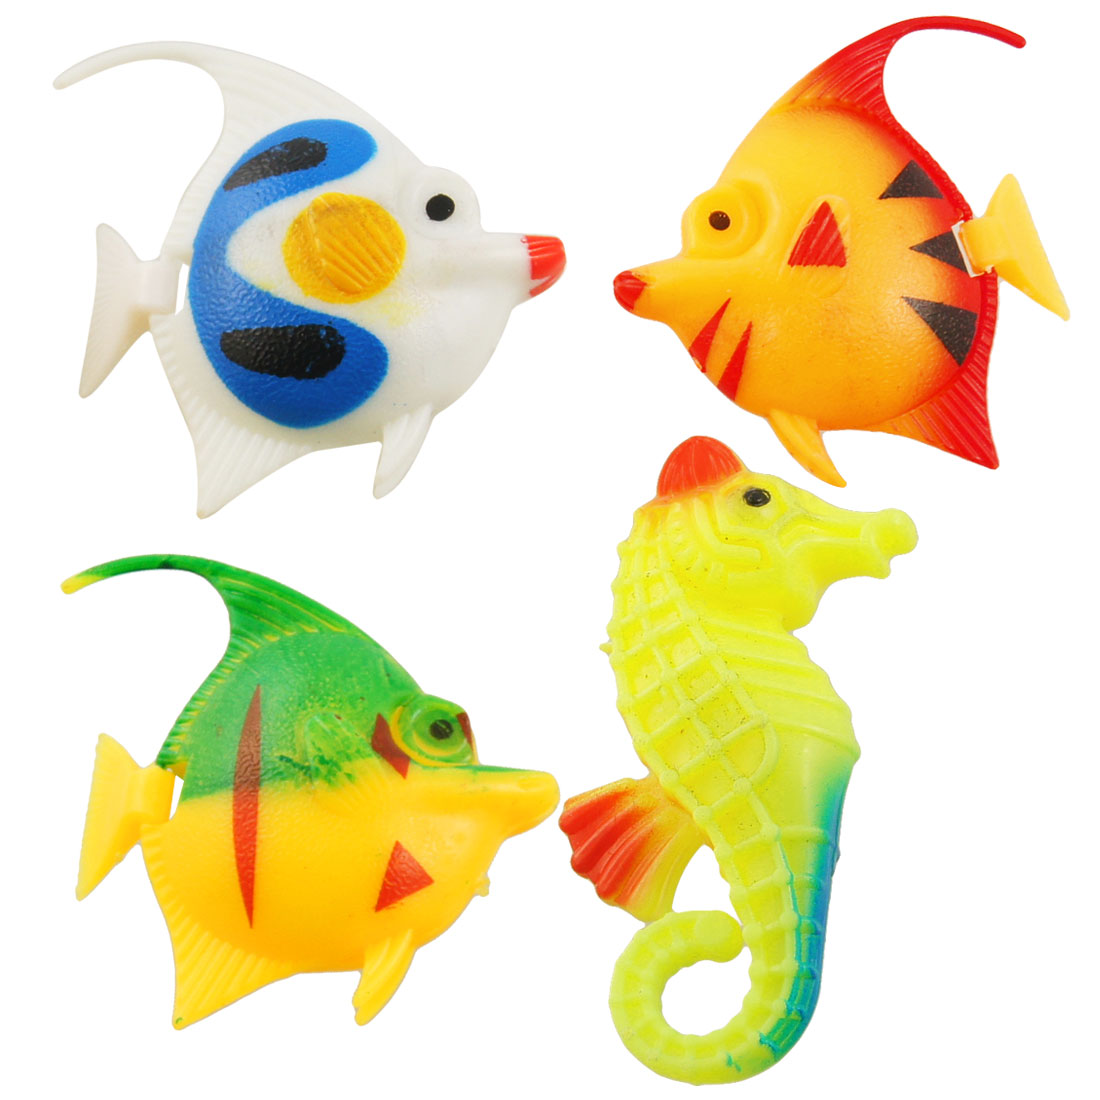 Aquarium Ornament Plastic Crafted Tropical Fish Colors 4 Pcs